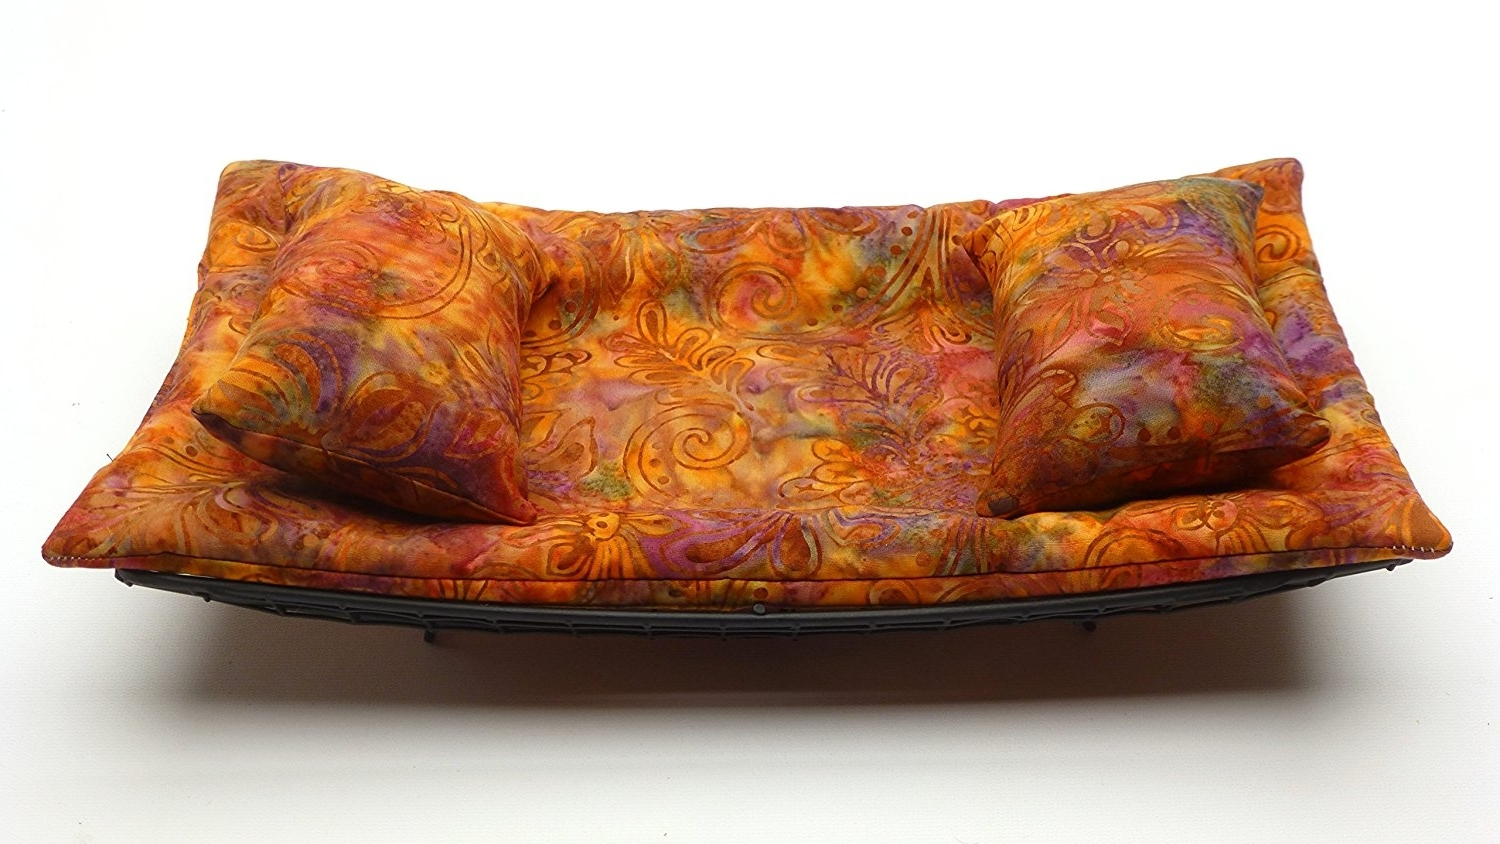 Carolina Designer Dragons Chaise Lounge For Bearded Dragons With Well Liked Orange Chaise Lounges (View 1 of 15)